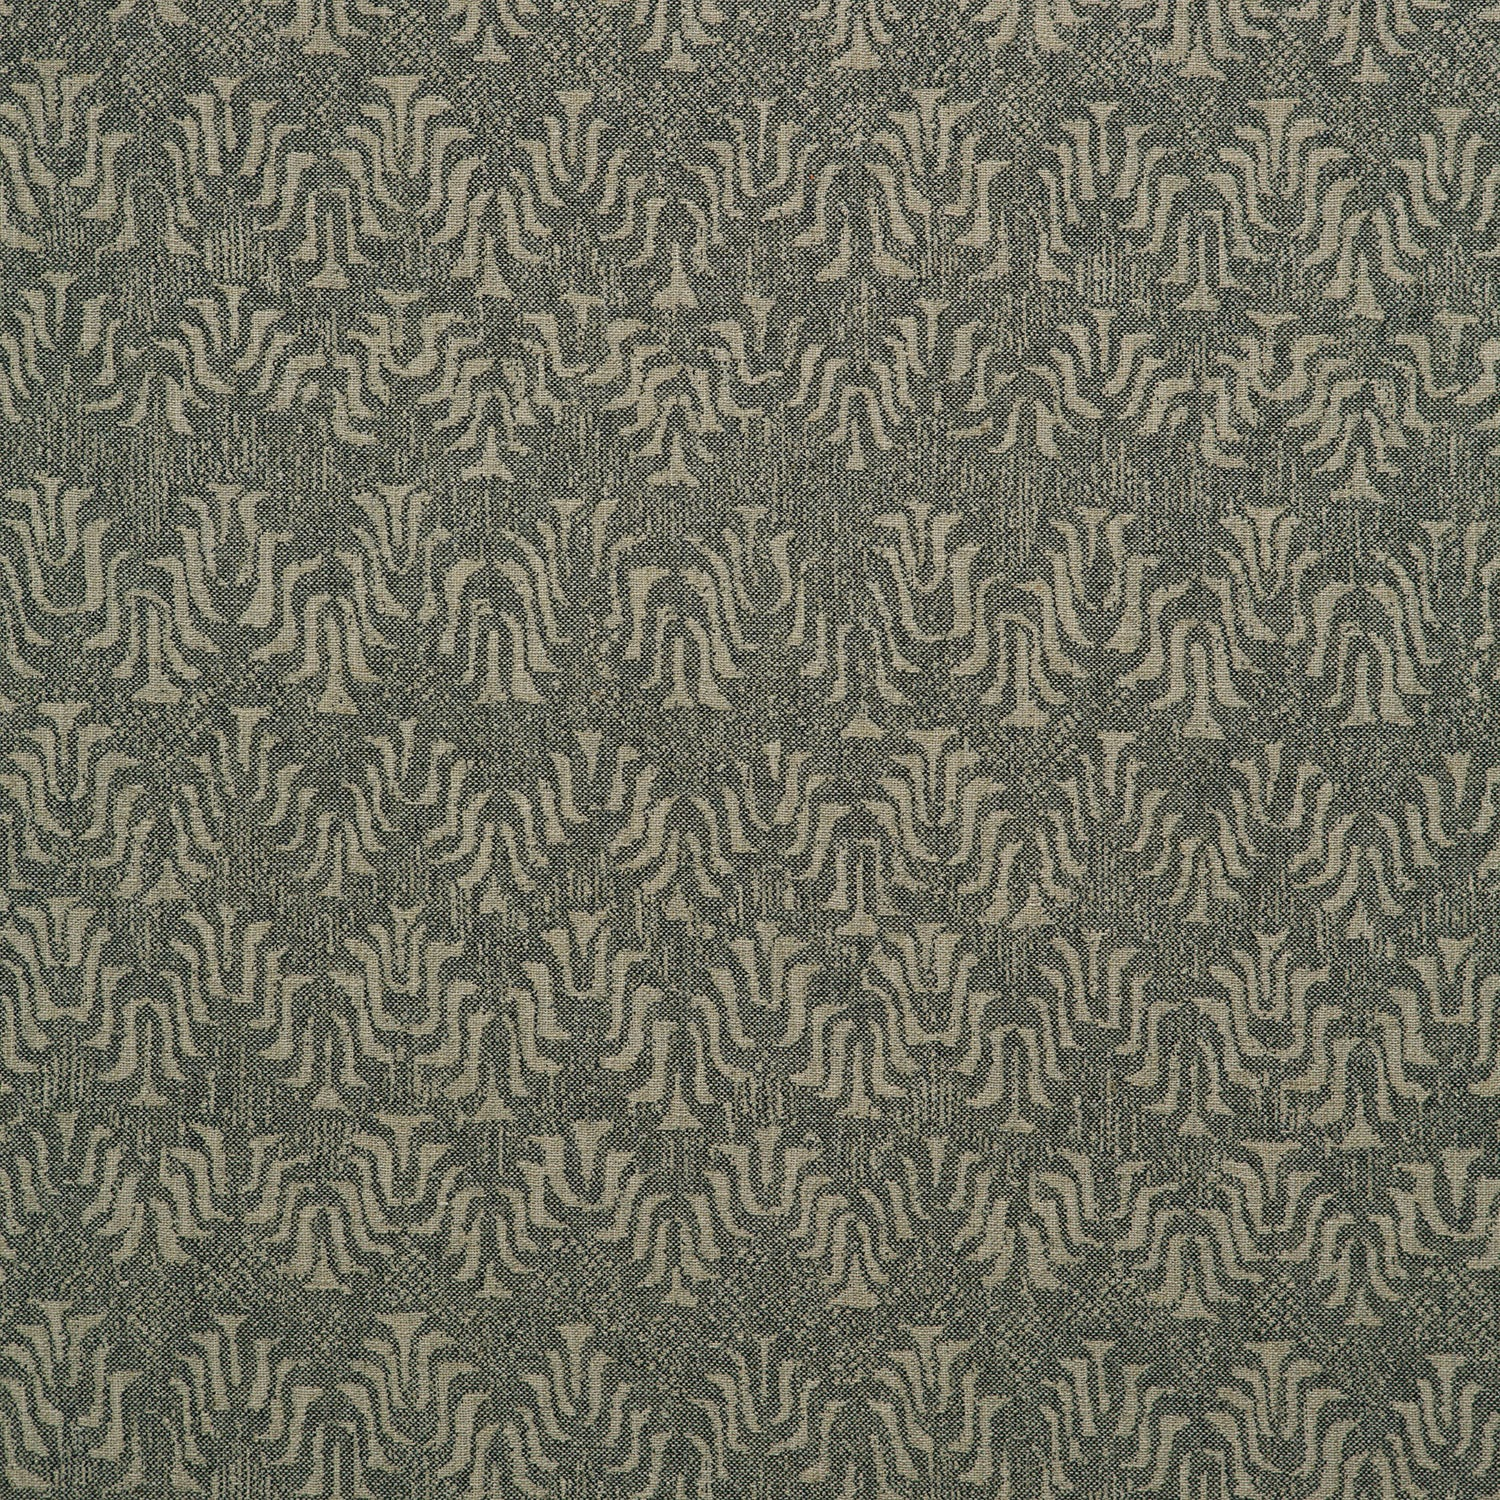 Fabric swatch of a dark grey and neutral jacquard weave fabric for curtains and upholstery